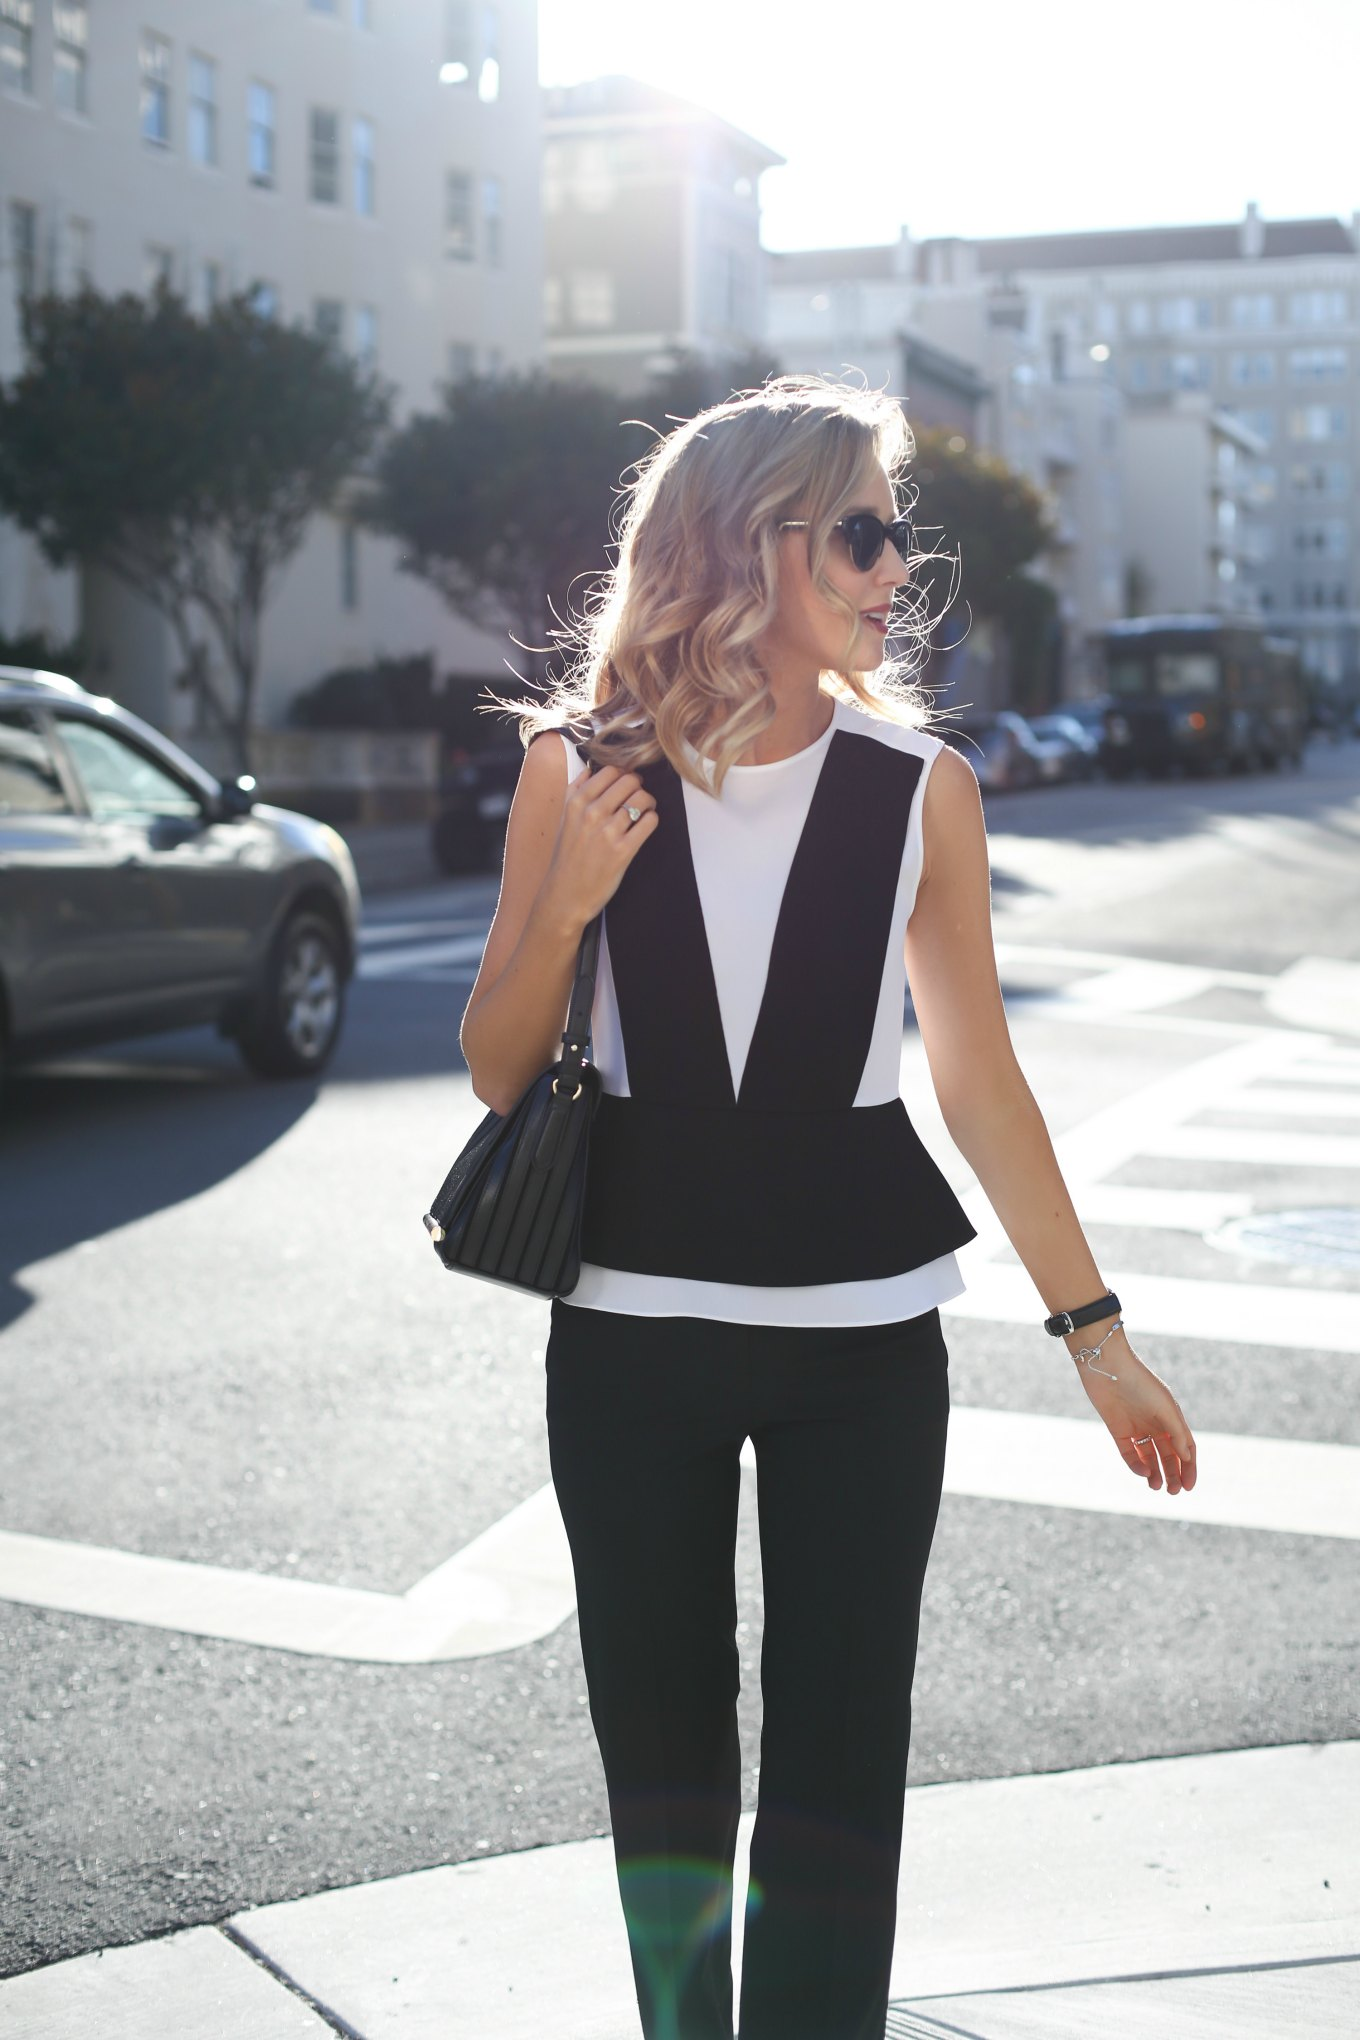 h-bgbg-tuxedo-peplum-black-and-white-top-black-dress-pants-work-wear-office-attire-professional-women-style-fashion-blog-san-francisco1